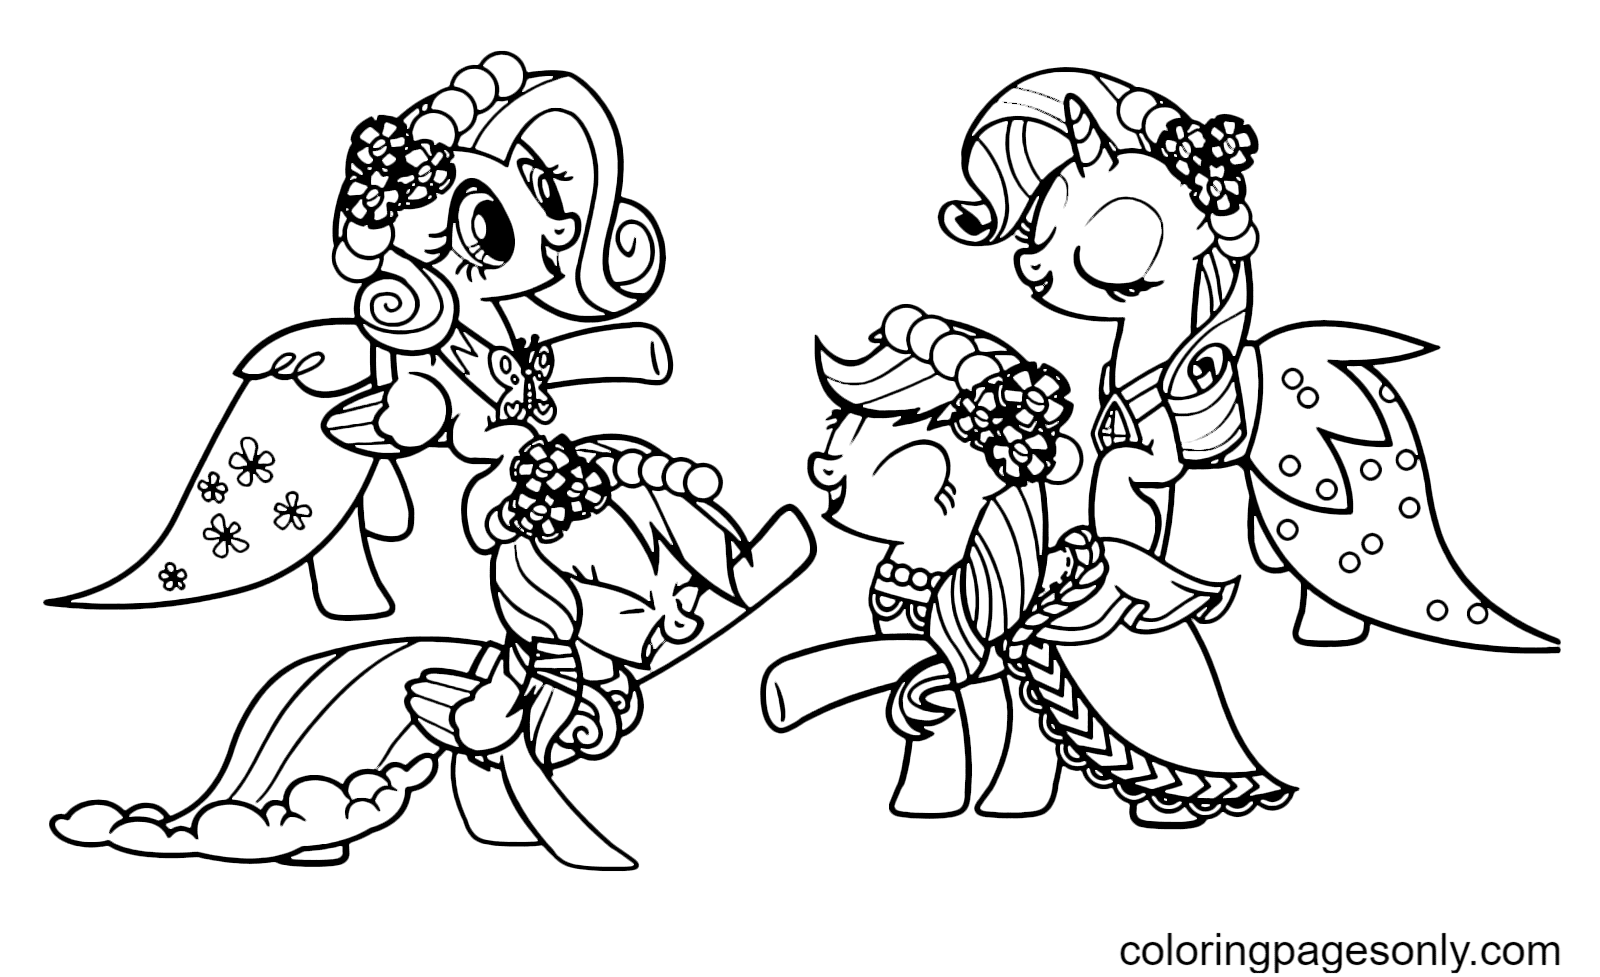 My Little Pony – Fluttershy – Applejack – Rainbow Dash – Rarity Coloring Page